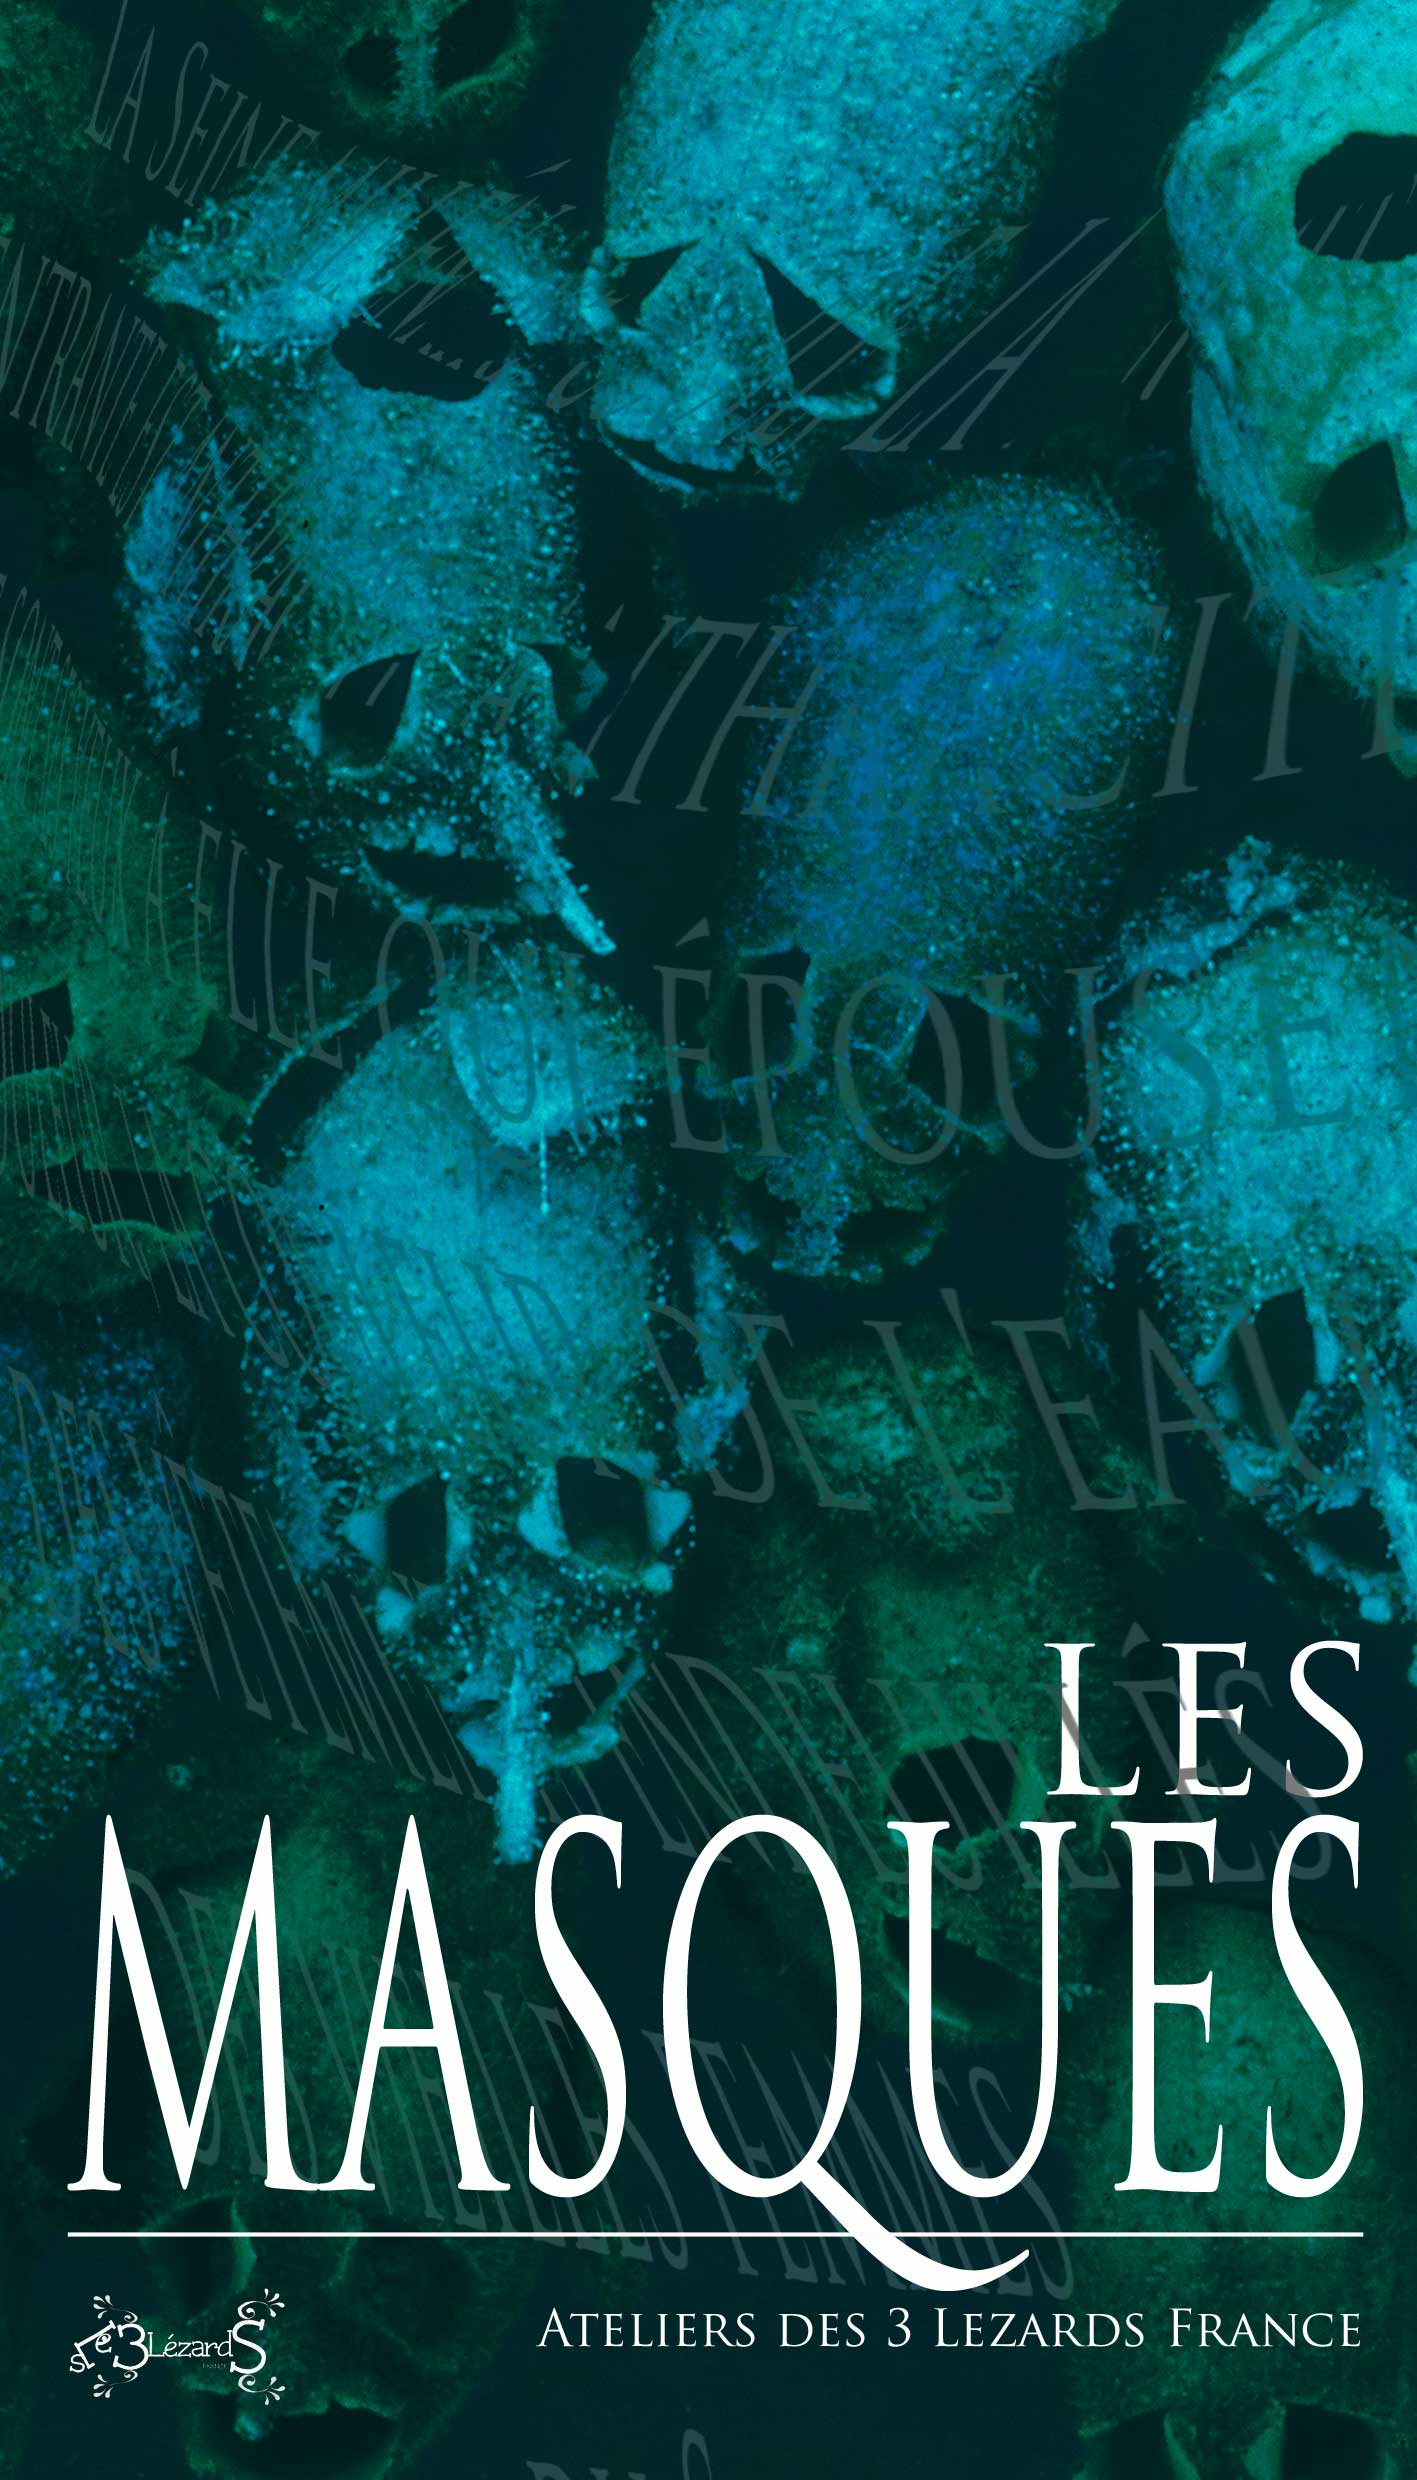 le-masque-final còpia.jpg